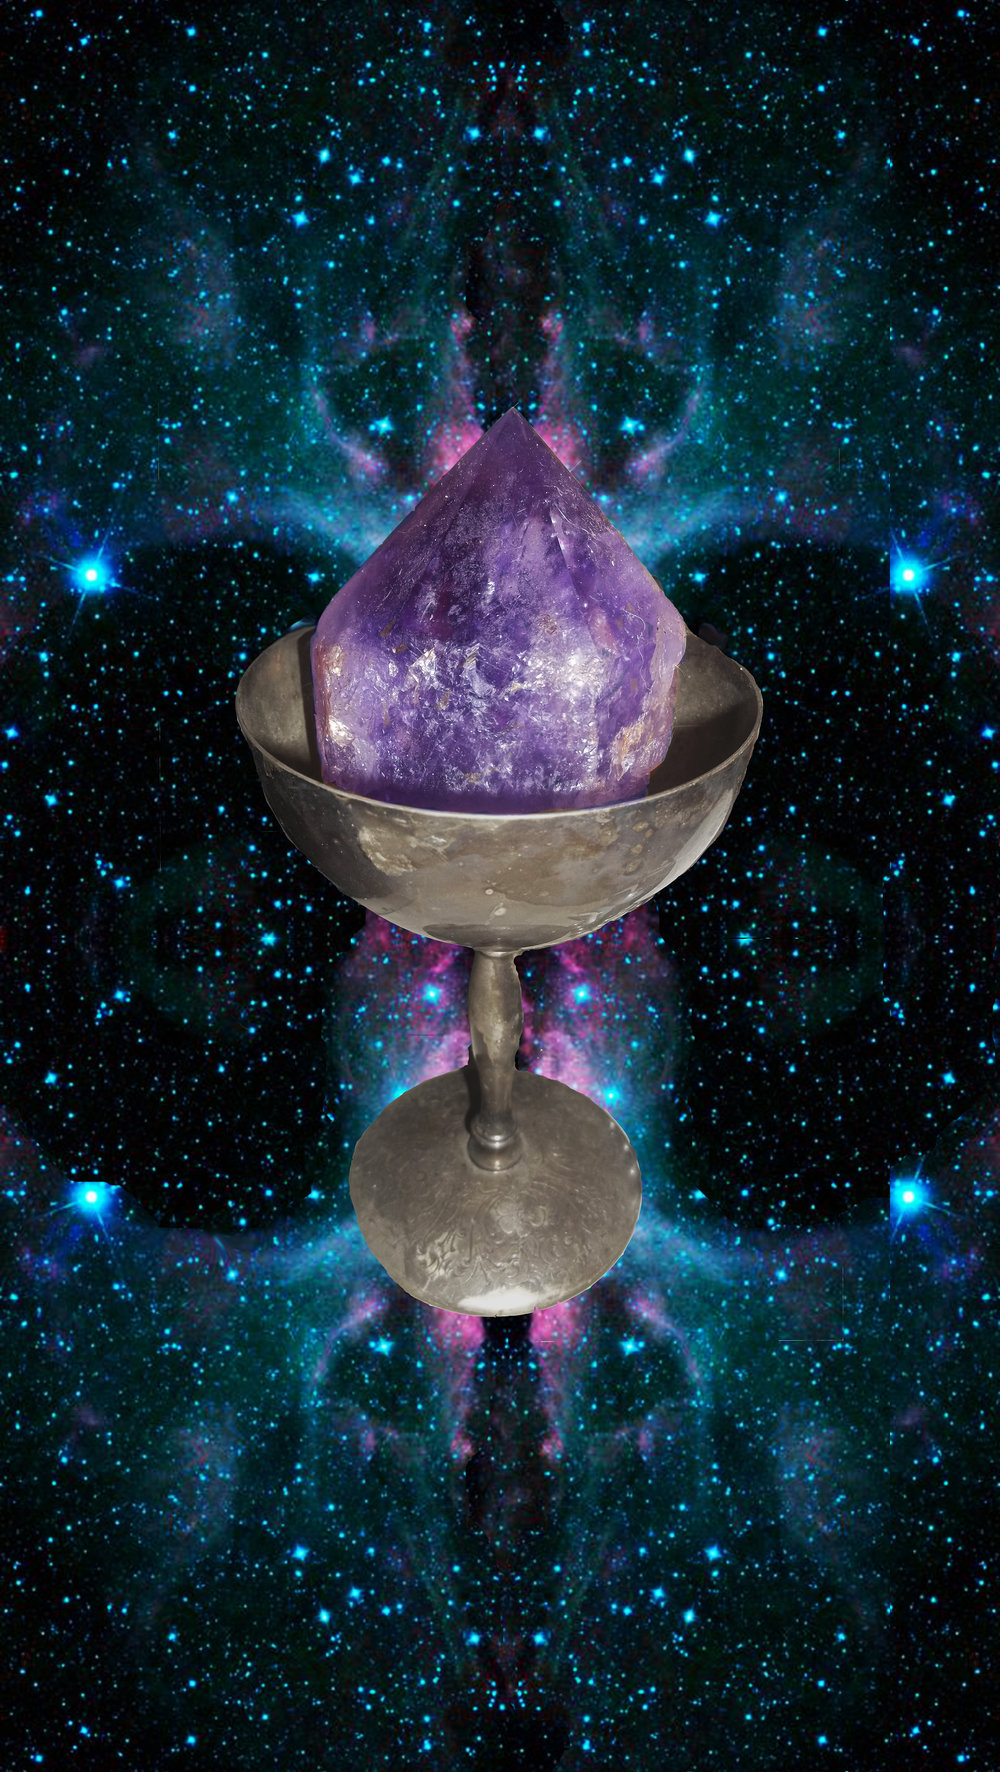 Created with Adobe Photoshop A large image of a  chalice in the vast beauty of space. The cup holds in it an amethyst  from  which the colors of a nebula seems to flow.